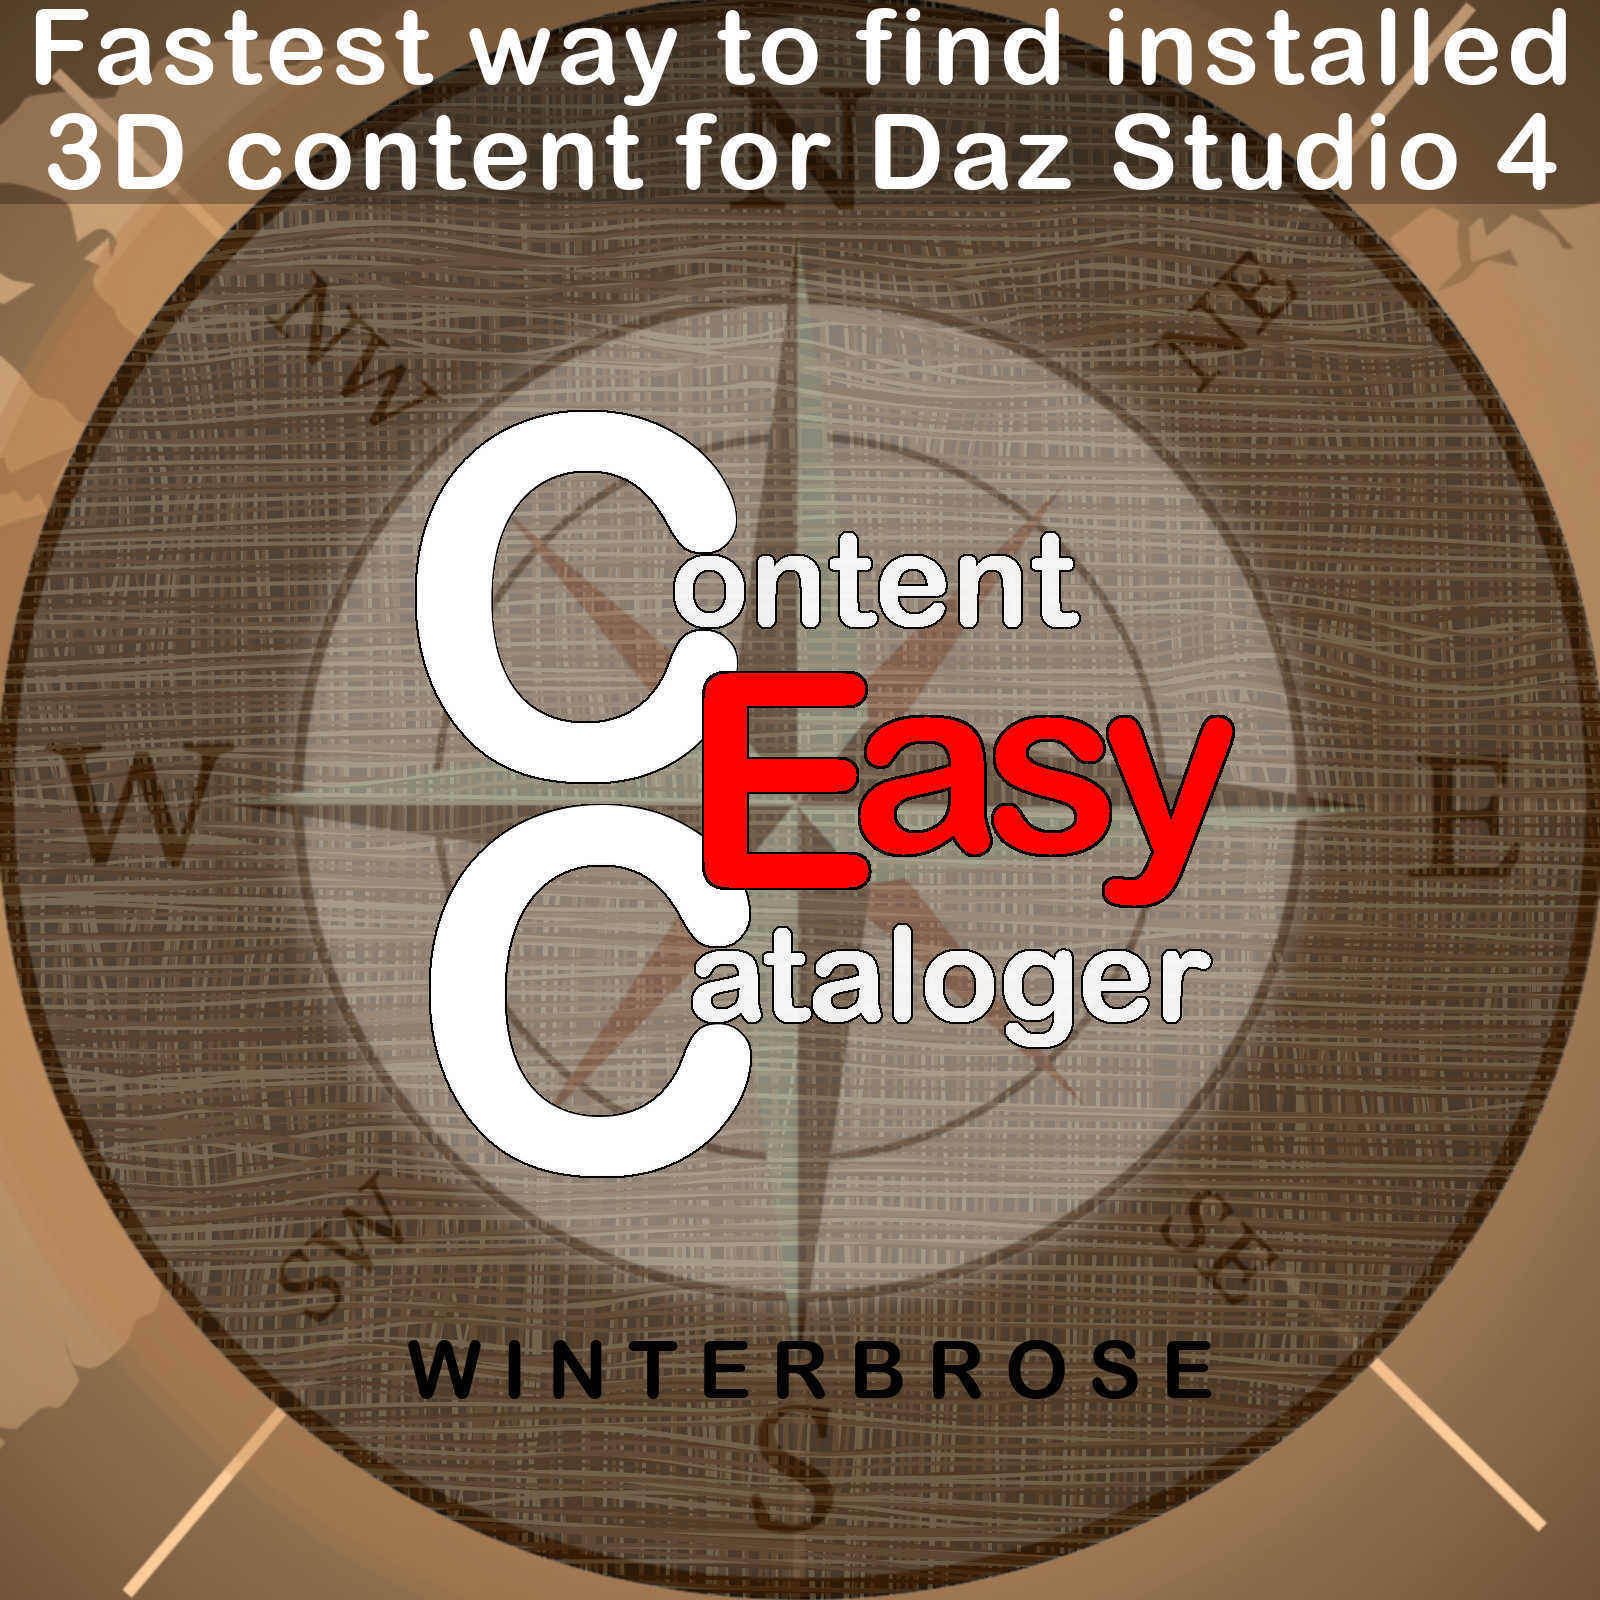 Content Cataloger Easy - Software for Windows, Daz Studio Edition